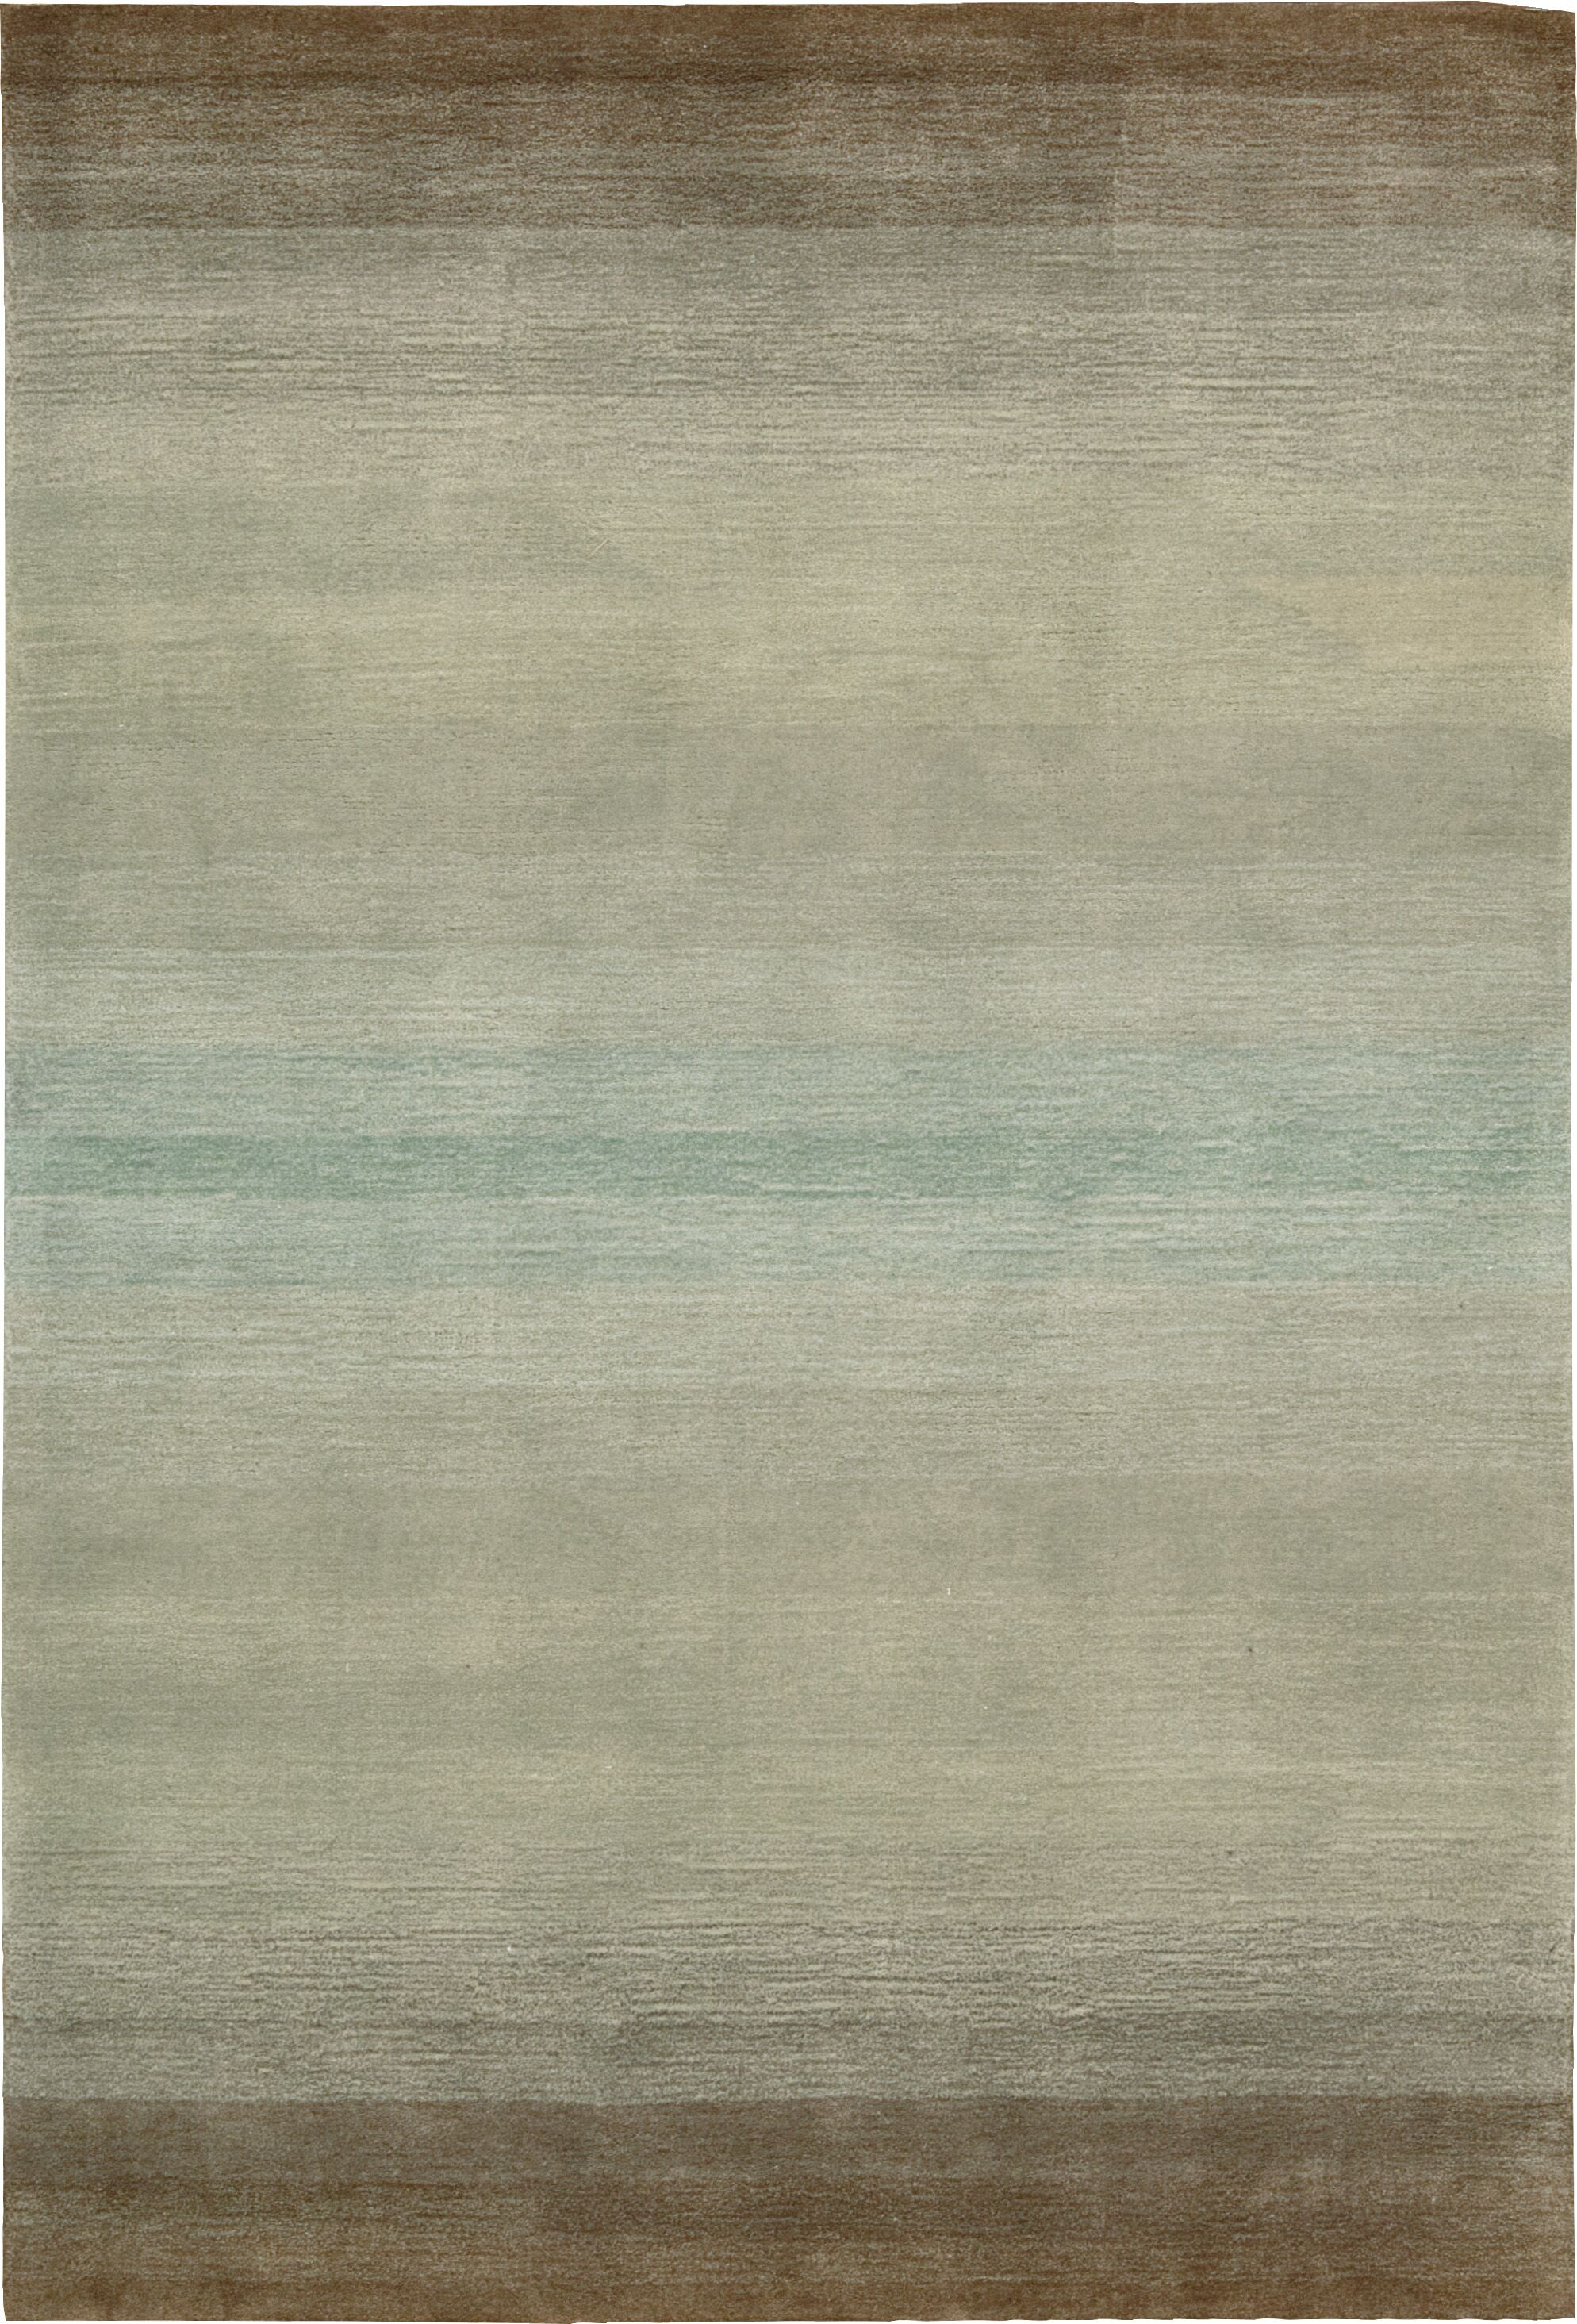 Ollie Hand-Tufted Gray Area Rug Rug Size: Rectangle 5' x 7'6